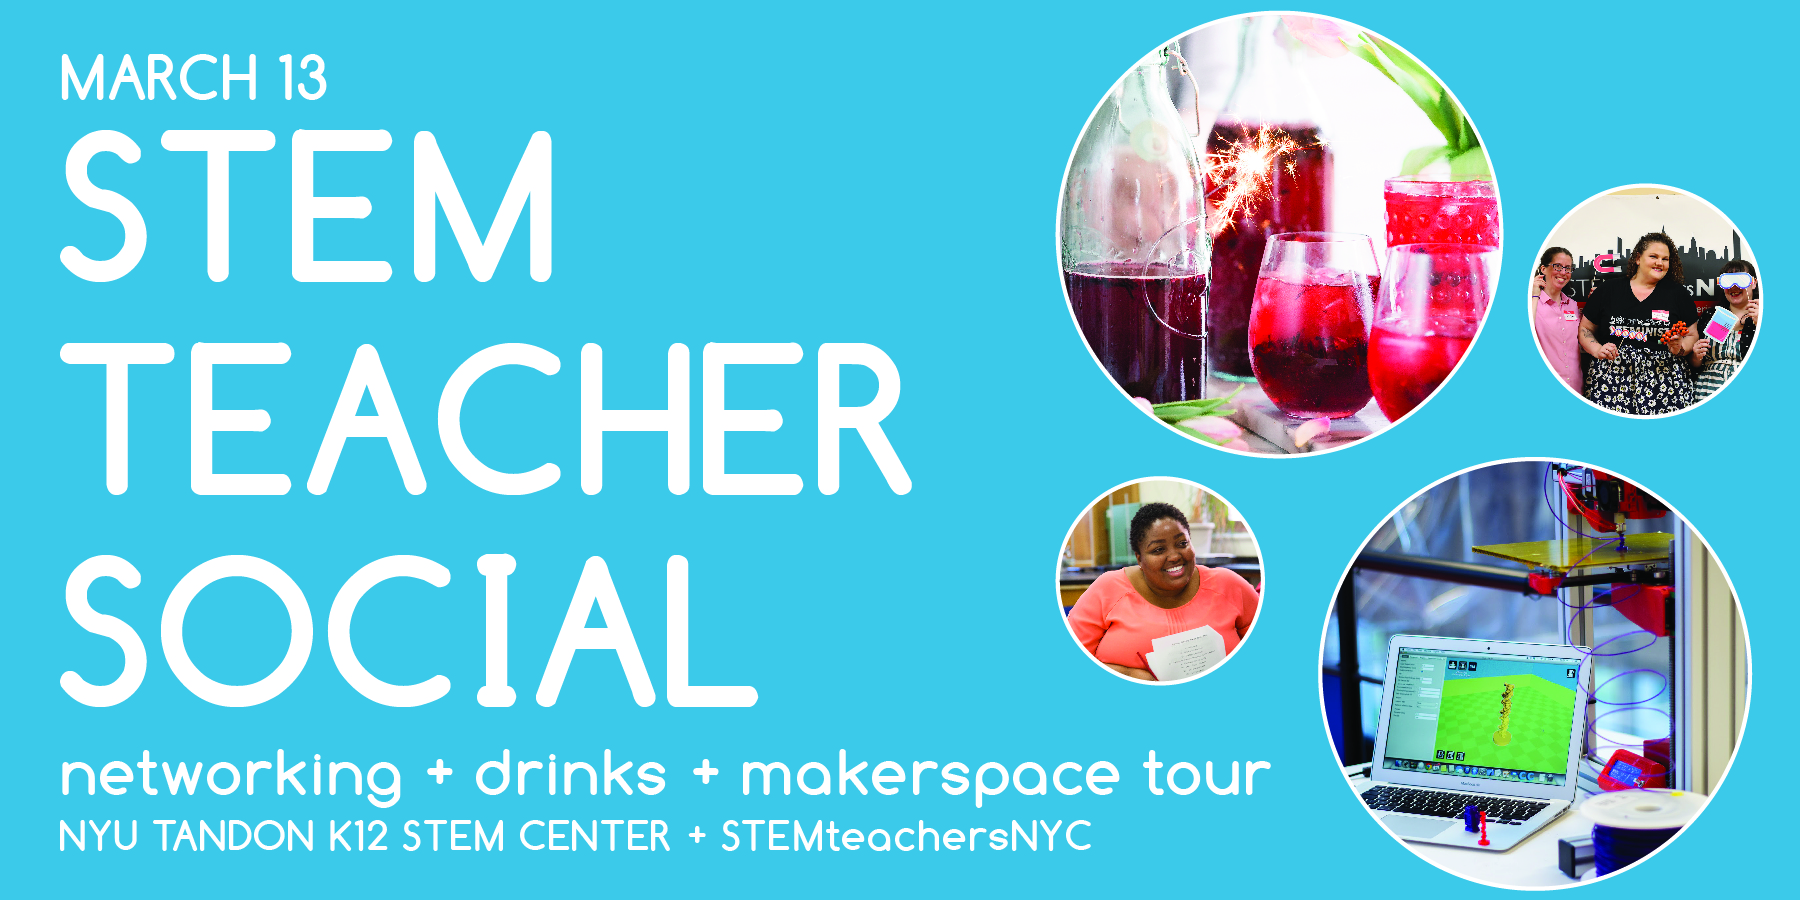 STEM Teacher Social at NYU!